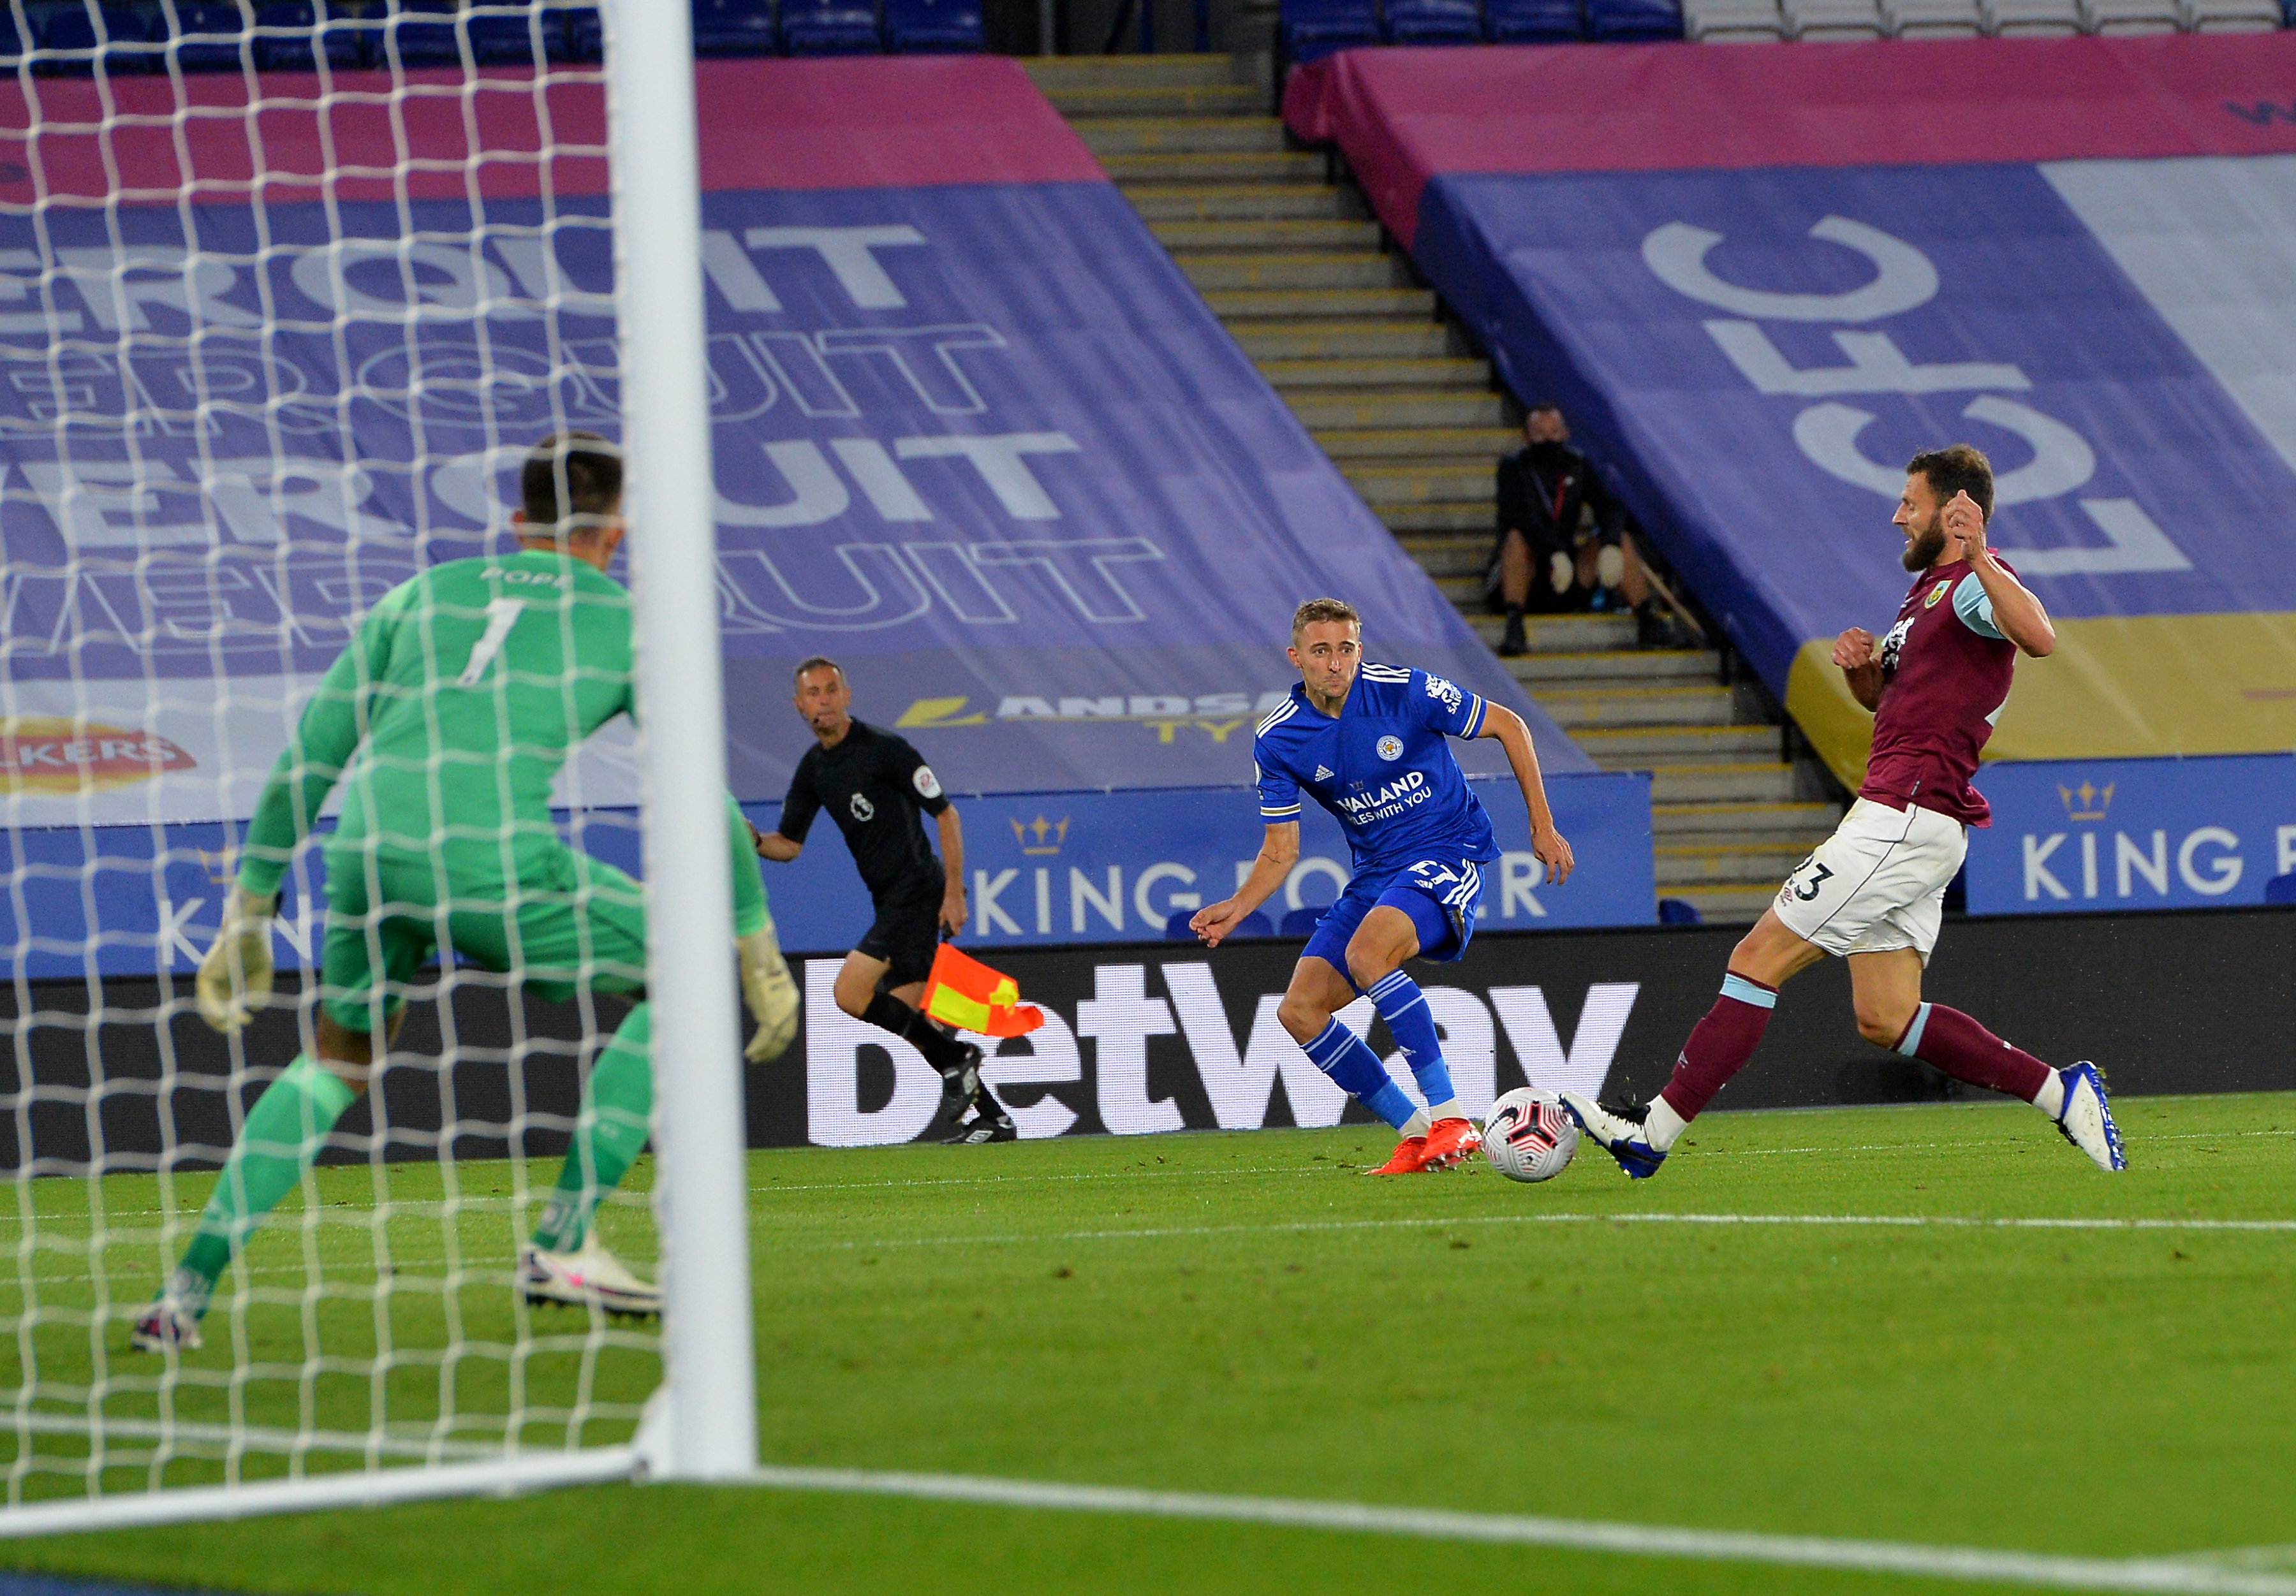 burnley vs leicester city - photo #41